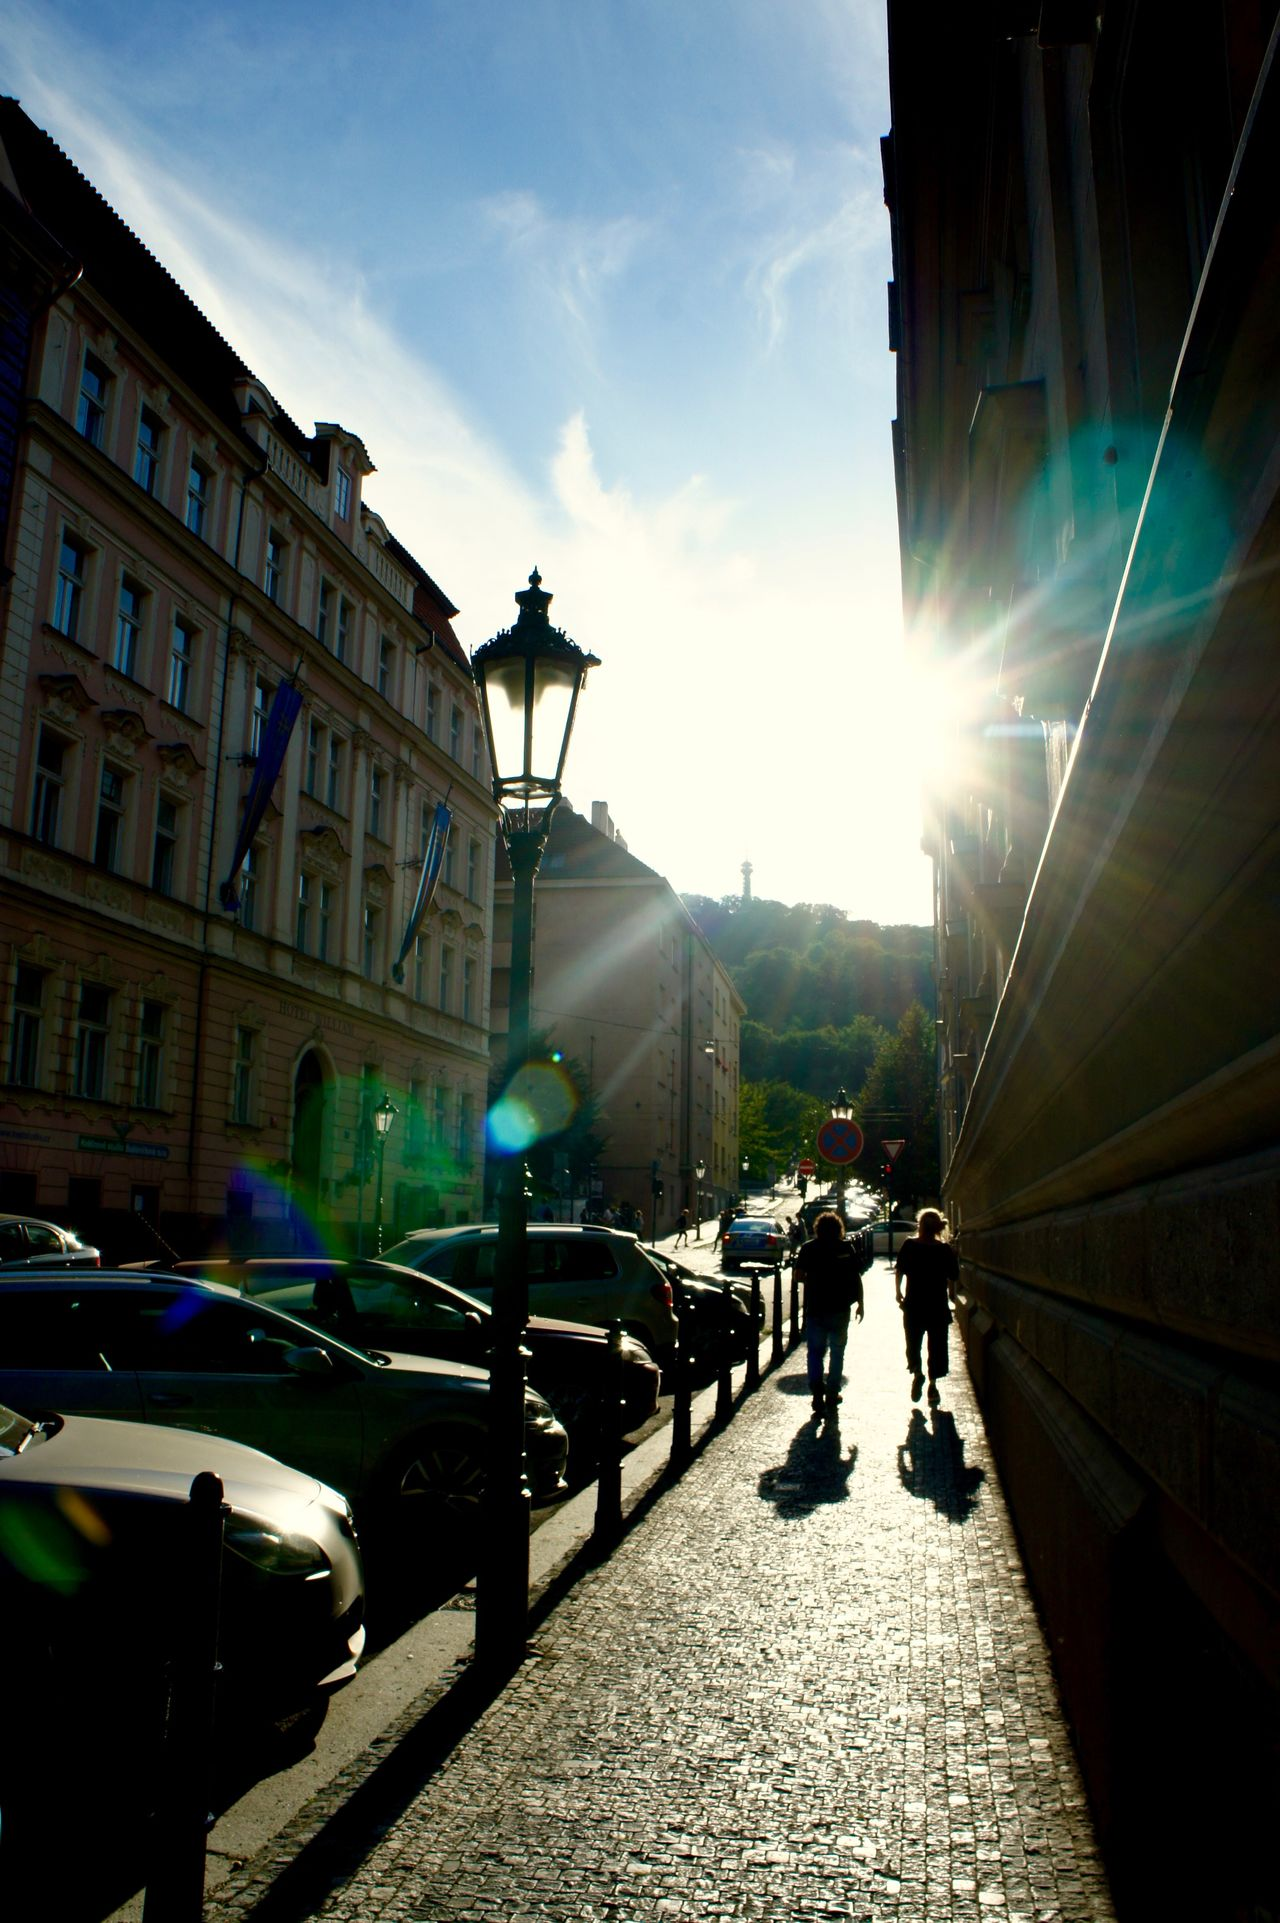 #Afternoon #City #city Life #late Summer #Prague #side Alleys #sun #urban